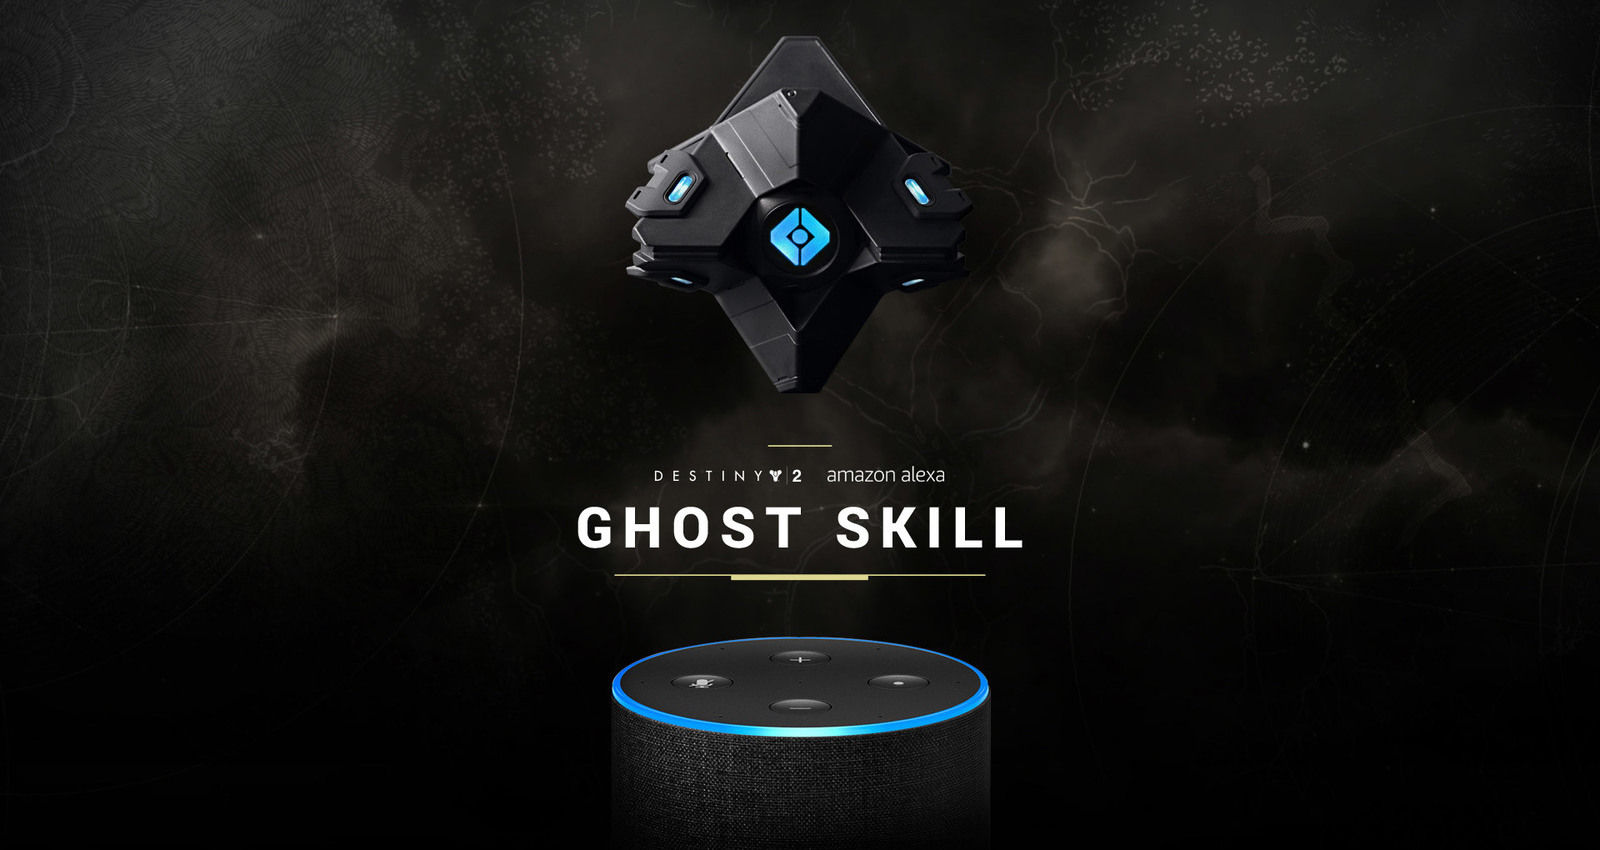 Destiny 2 Ghost Skill